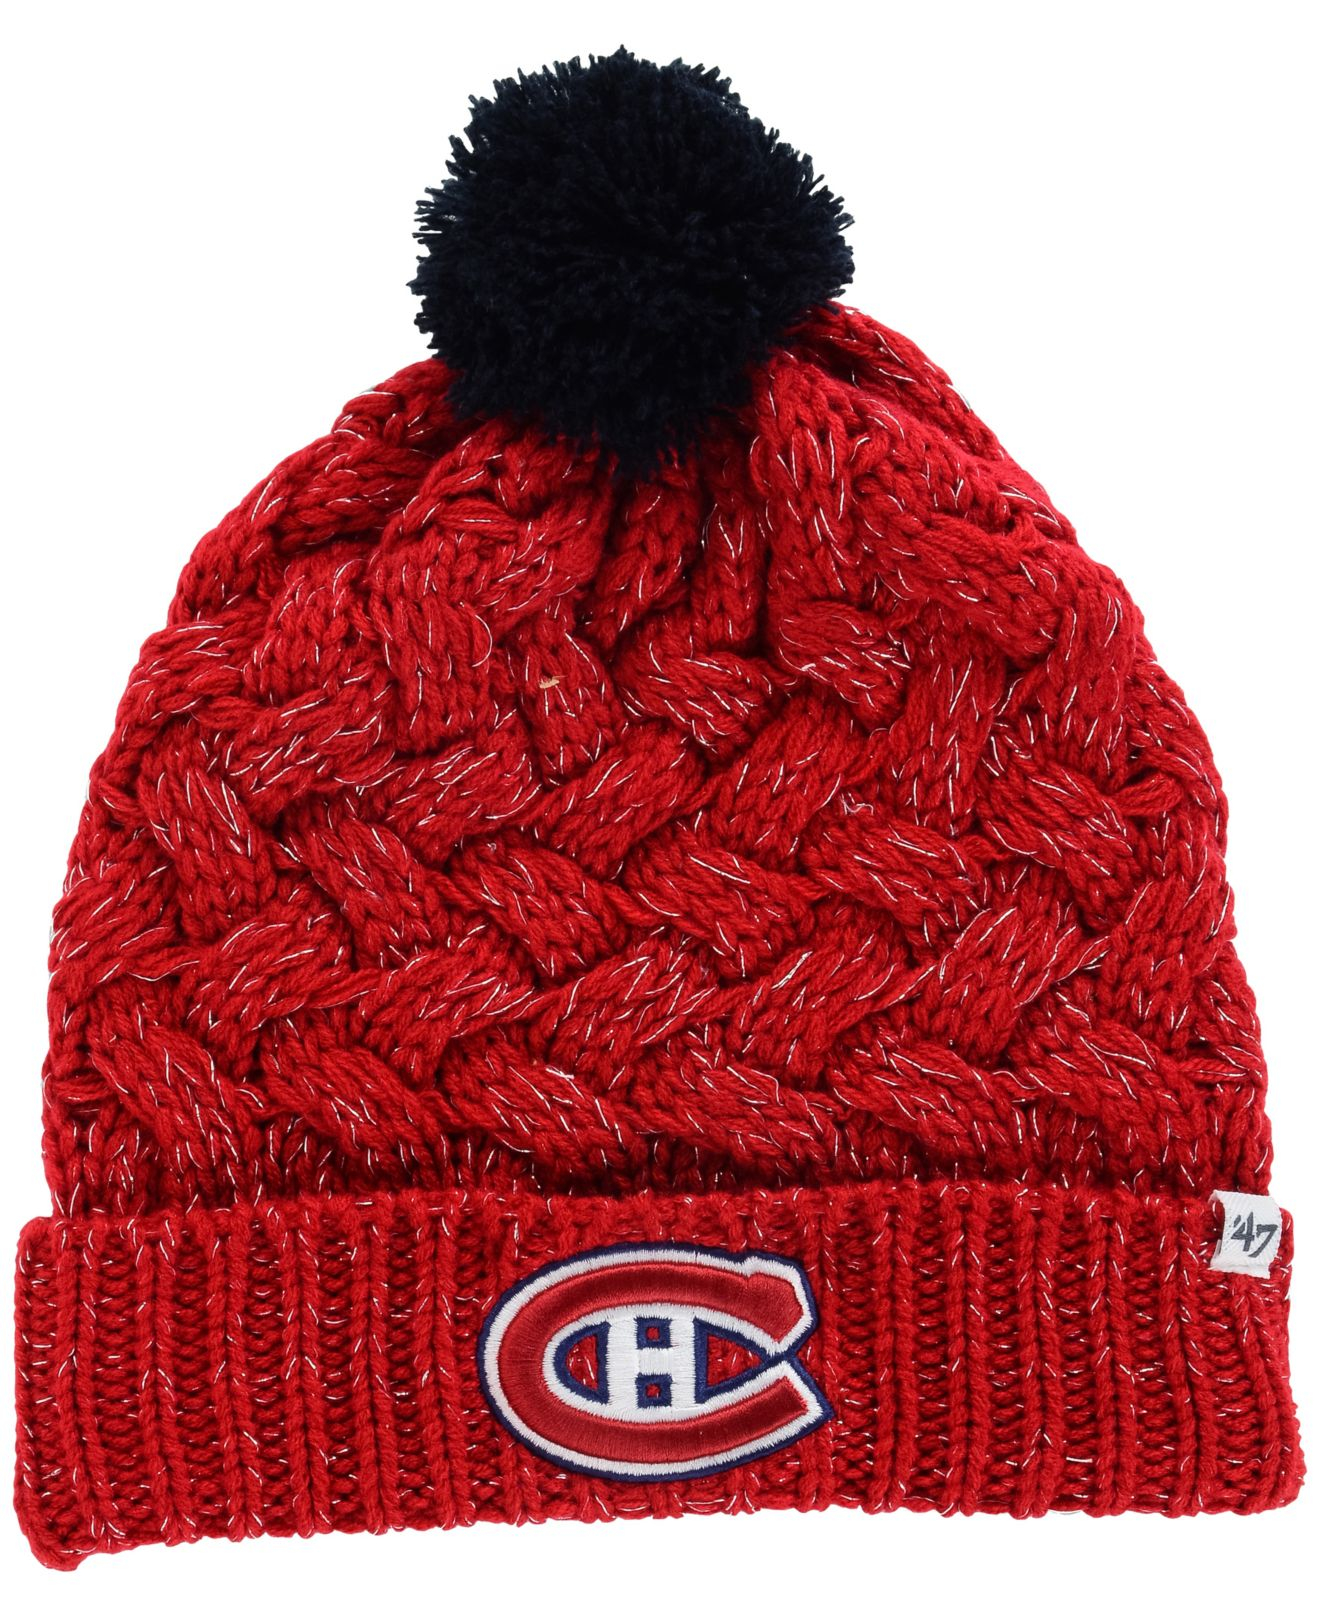 078e1ca075e Lyst - 47 Brand Women s Montreal Canadiens Fiona Pom Knit Hat in Red